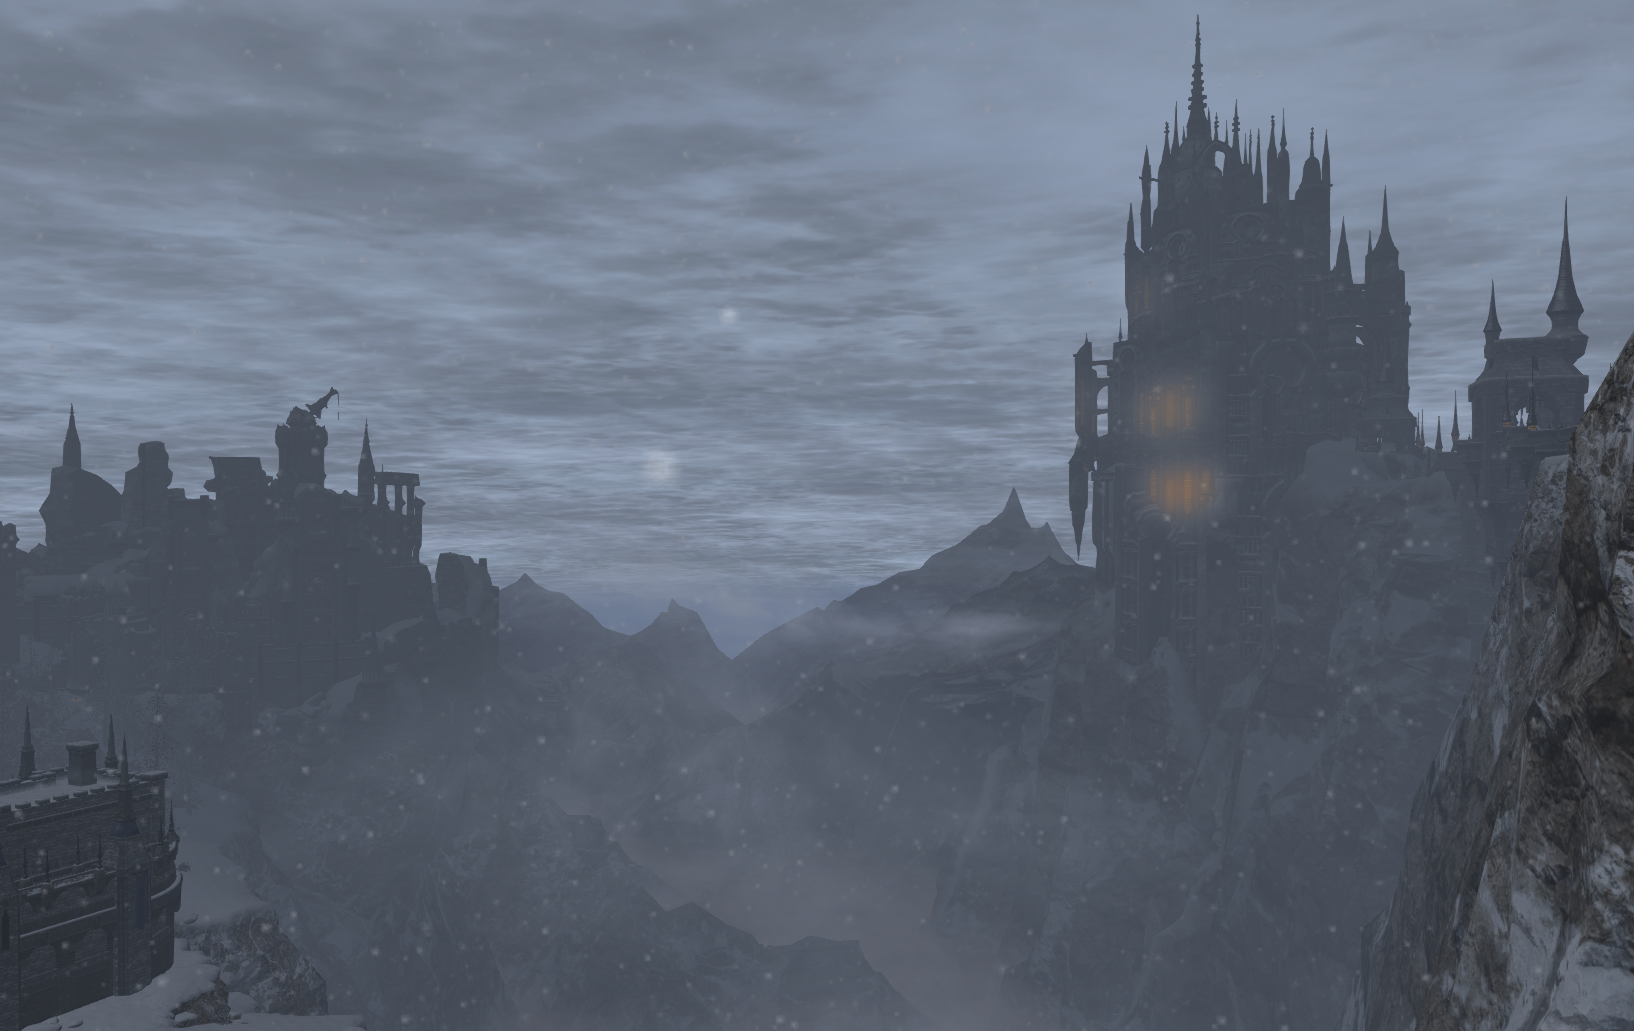 Final Fantasy XIV: A Realm Reborn - Ishgard The Land of the Dragons